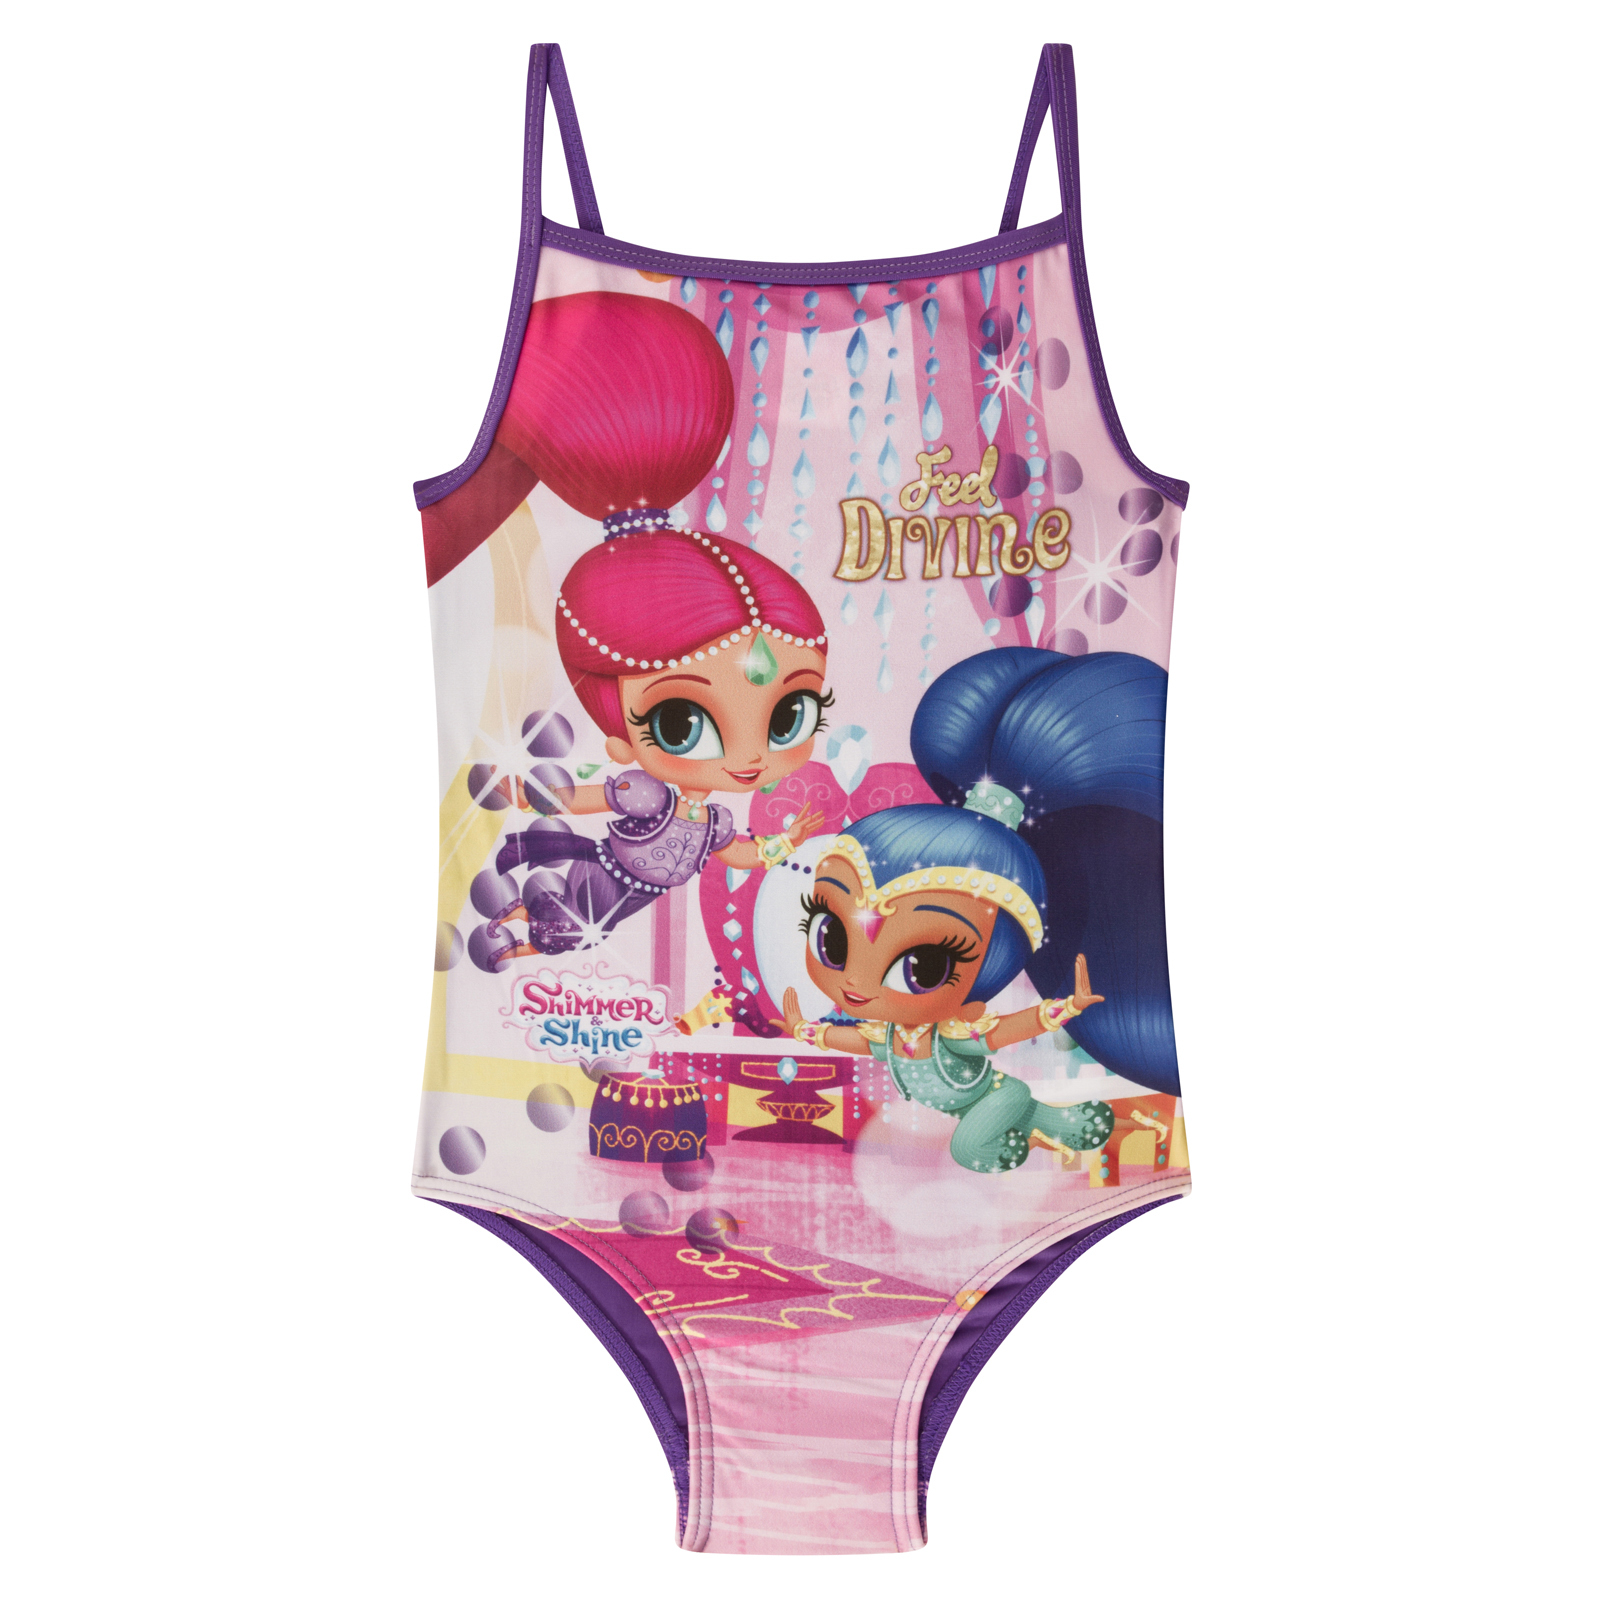 8cee3703cd Details about Shimmer And Shine Official Gift Girls Kids Swim Suit Costume